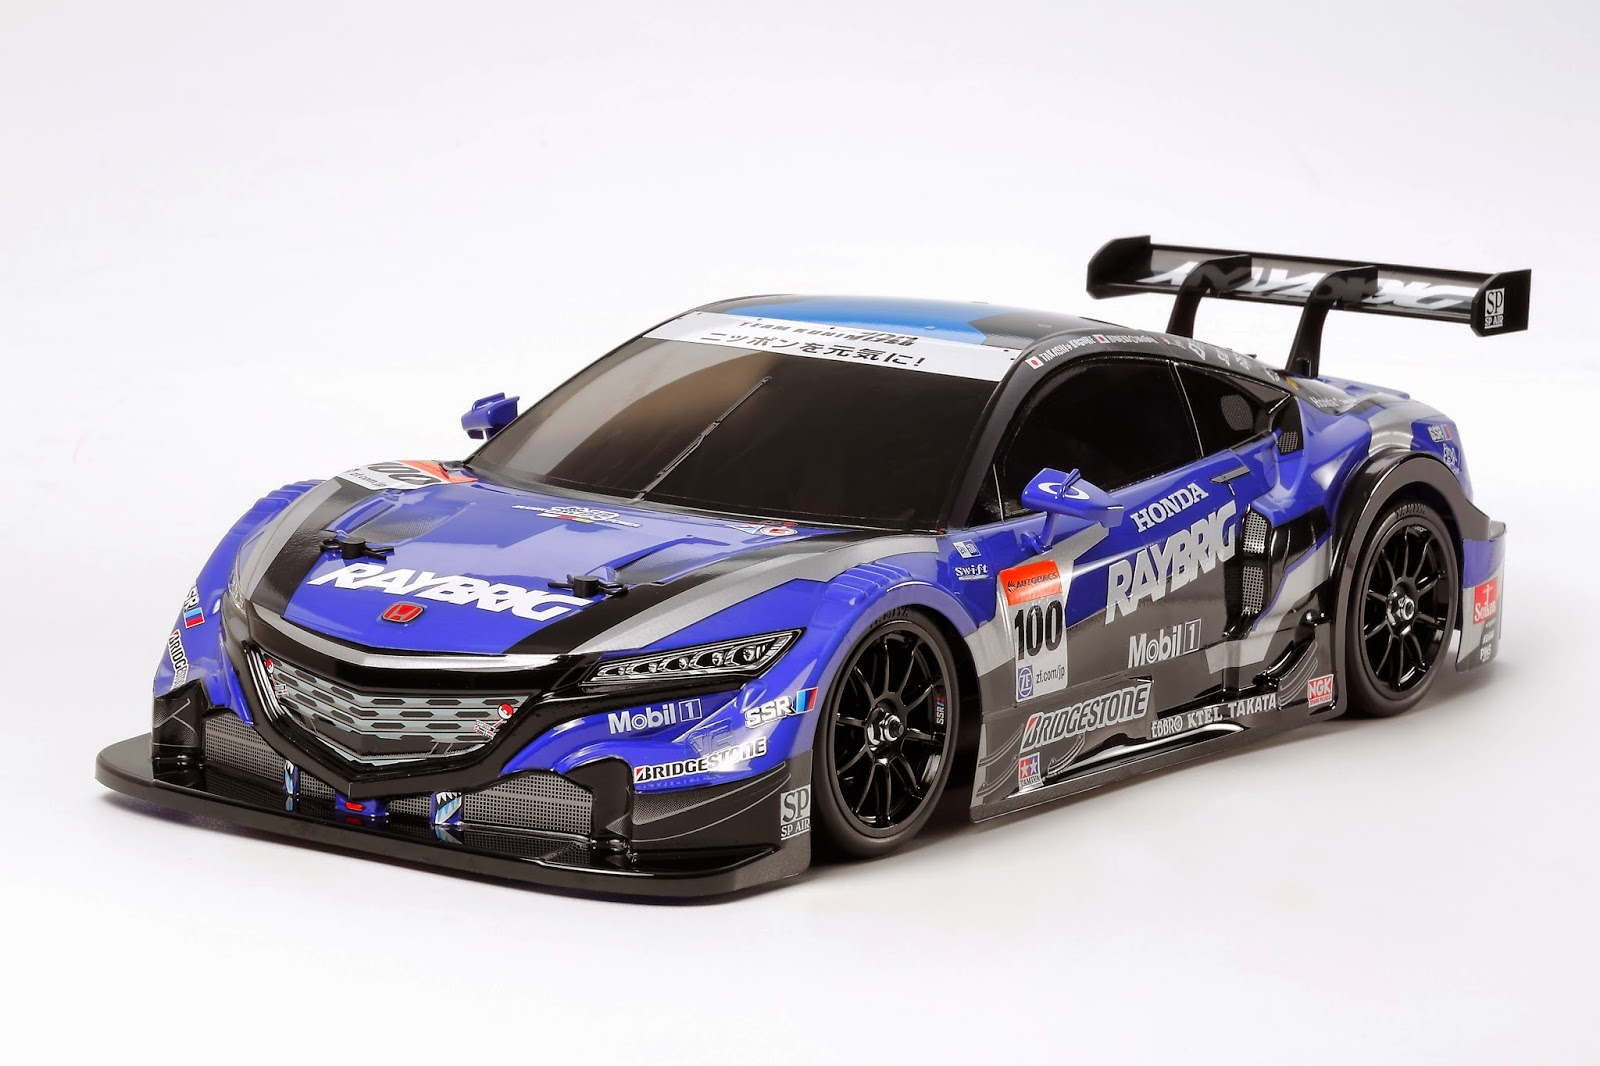 New Raybrig Nsx Concept Gt Race Car In 1 10 Scale